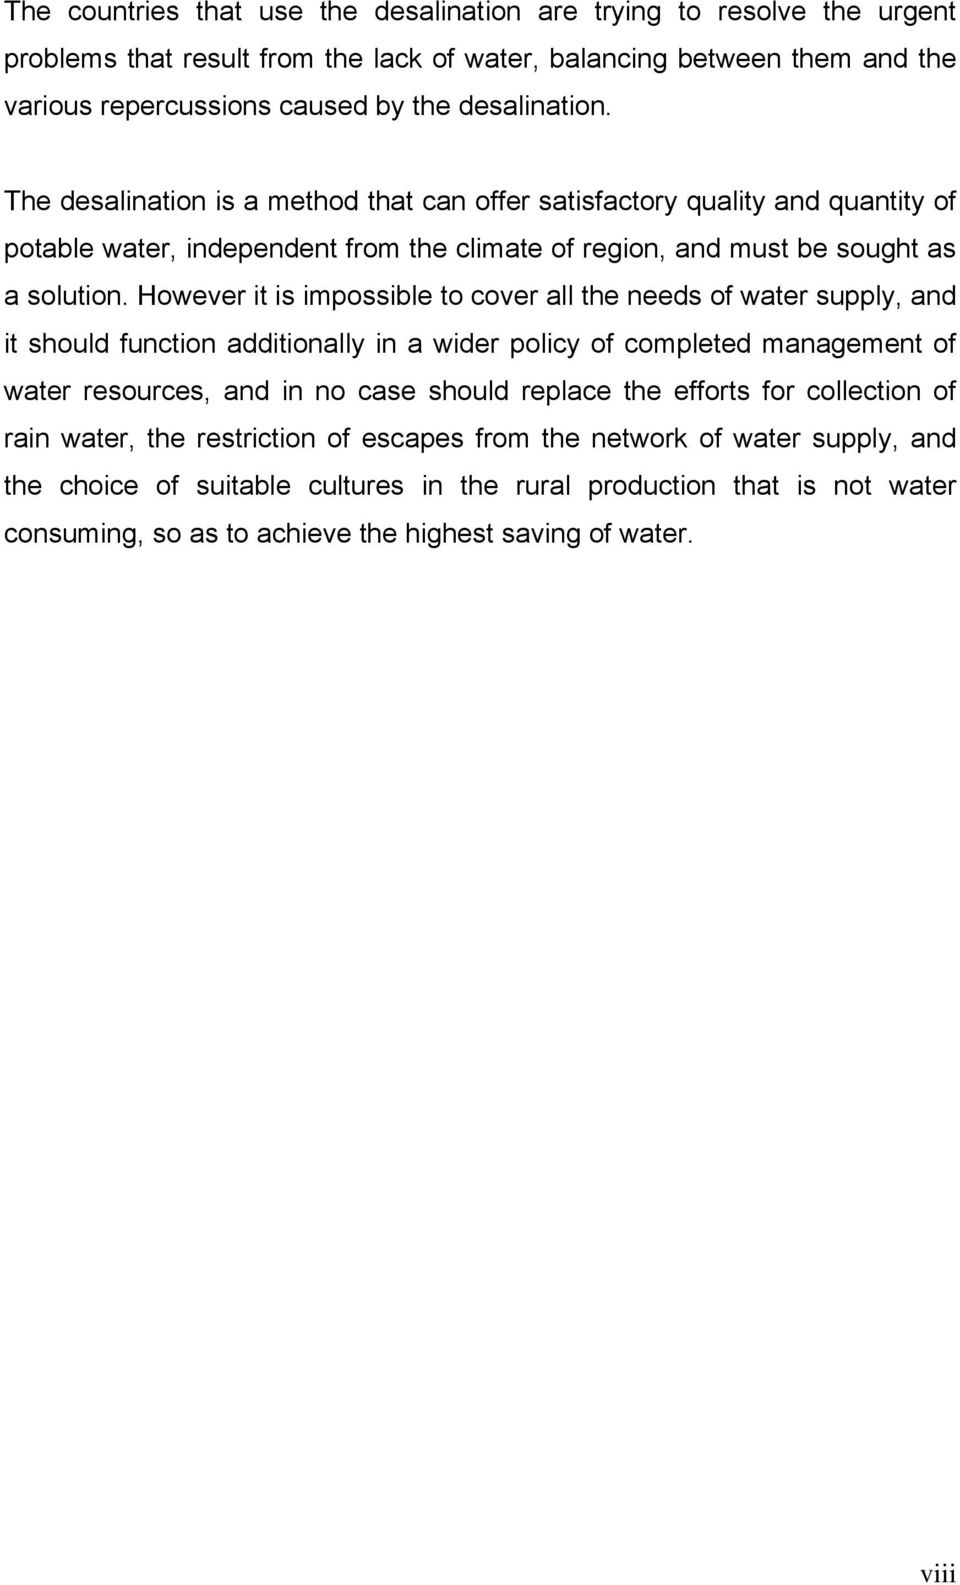 However it is impossible to cover all the needs of water supply, and it should function additionally in a wider policy of completed management of water resources, and in no case should replace the